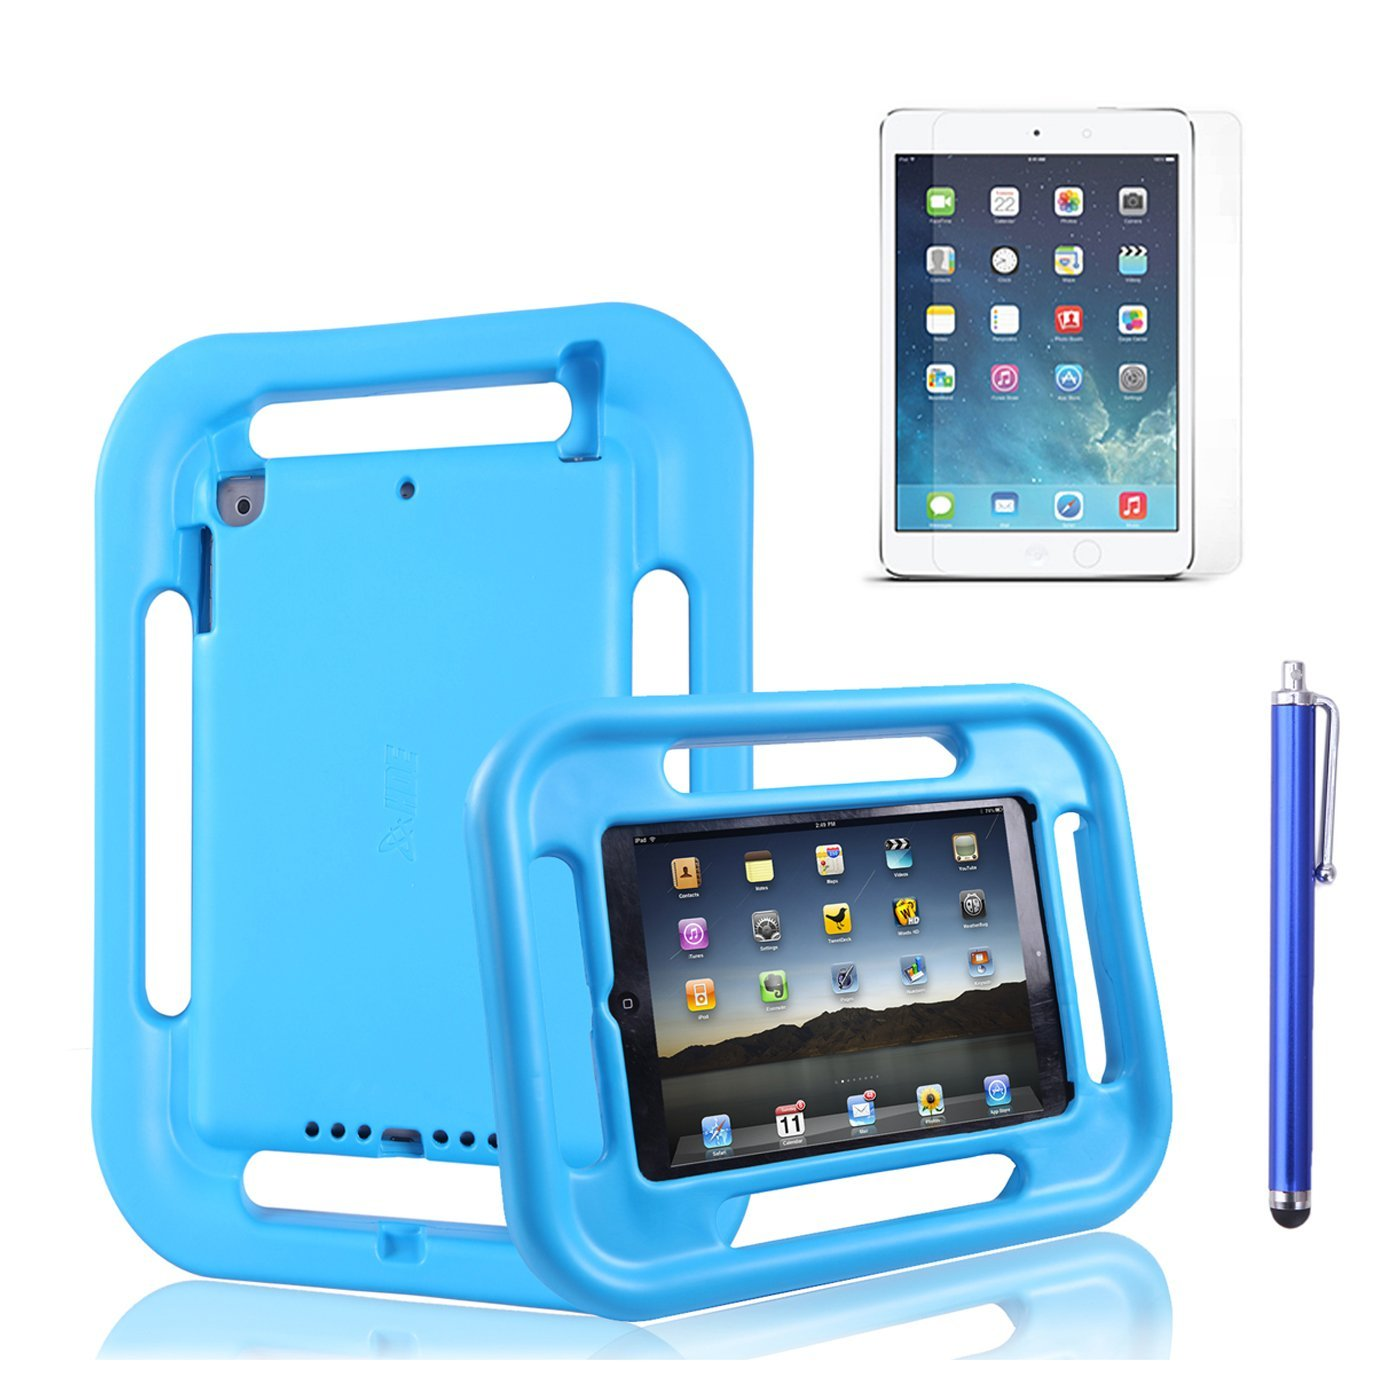 HDE iPad Air 2 Kids Case Shock Absorbing Multi Handle Easy Grip Foam Cover for iPad with Screen Protector and Stylus (Blue)